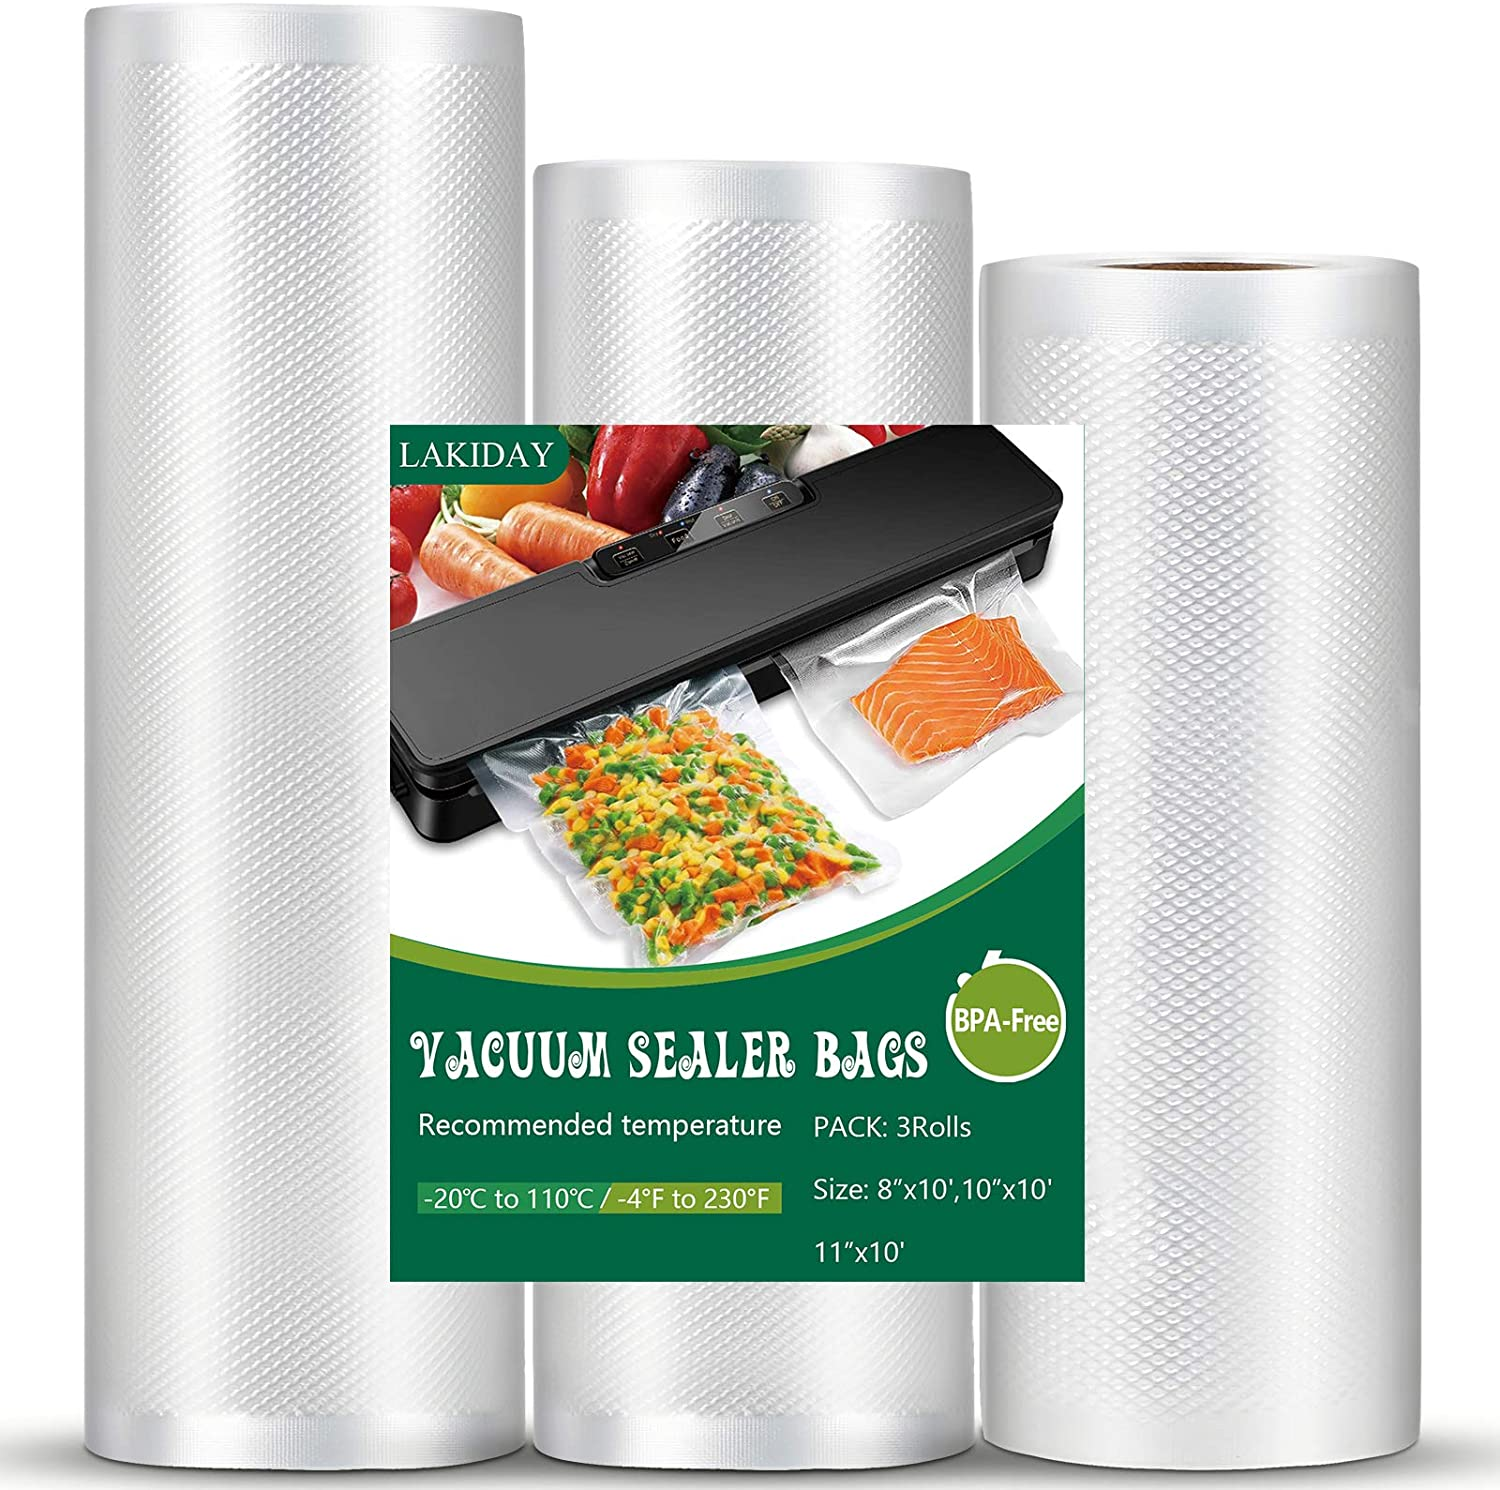 """Vacuum Sealer Bags Vacuum Seal Roll Seal a Meal Commercial Grade BPA Free Heavy Duty Great for vac storage bag Meal Prep and Sous Vide 3 Rolls 8""""x 10ft ,10""""x 10ft ,11""""x10ft(total of 30 feet)"""